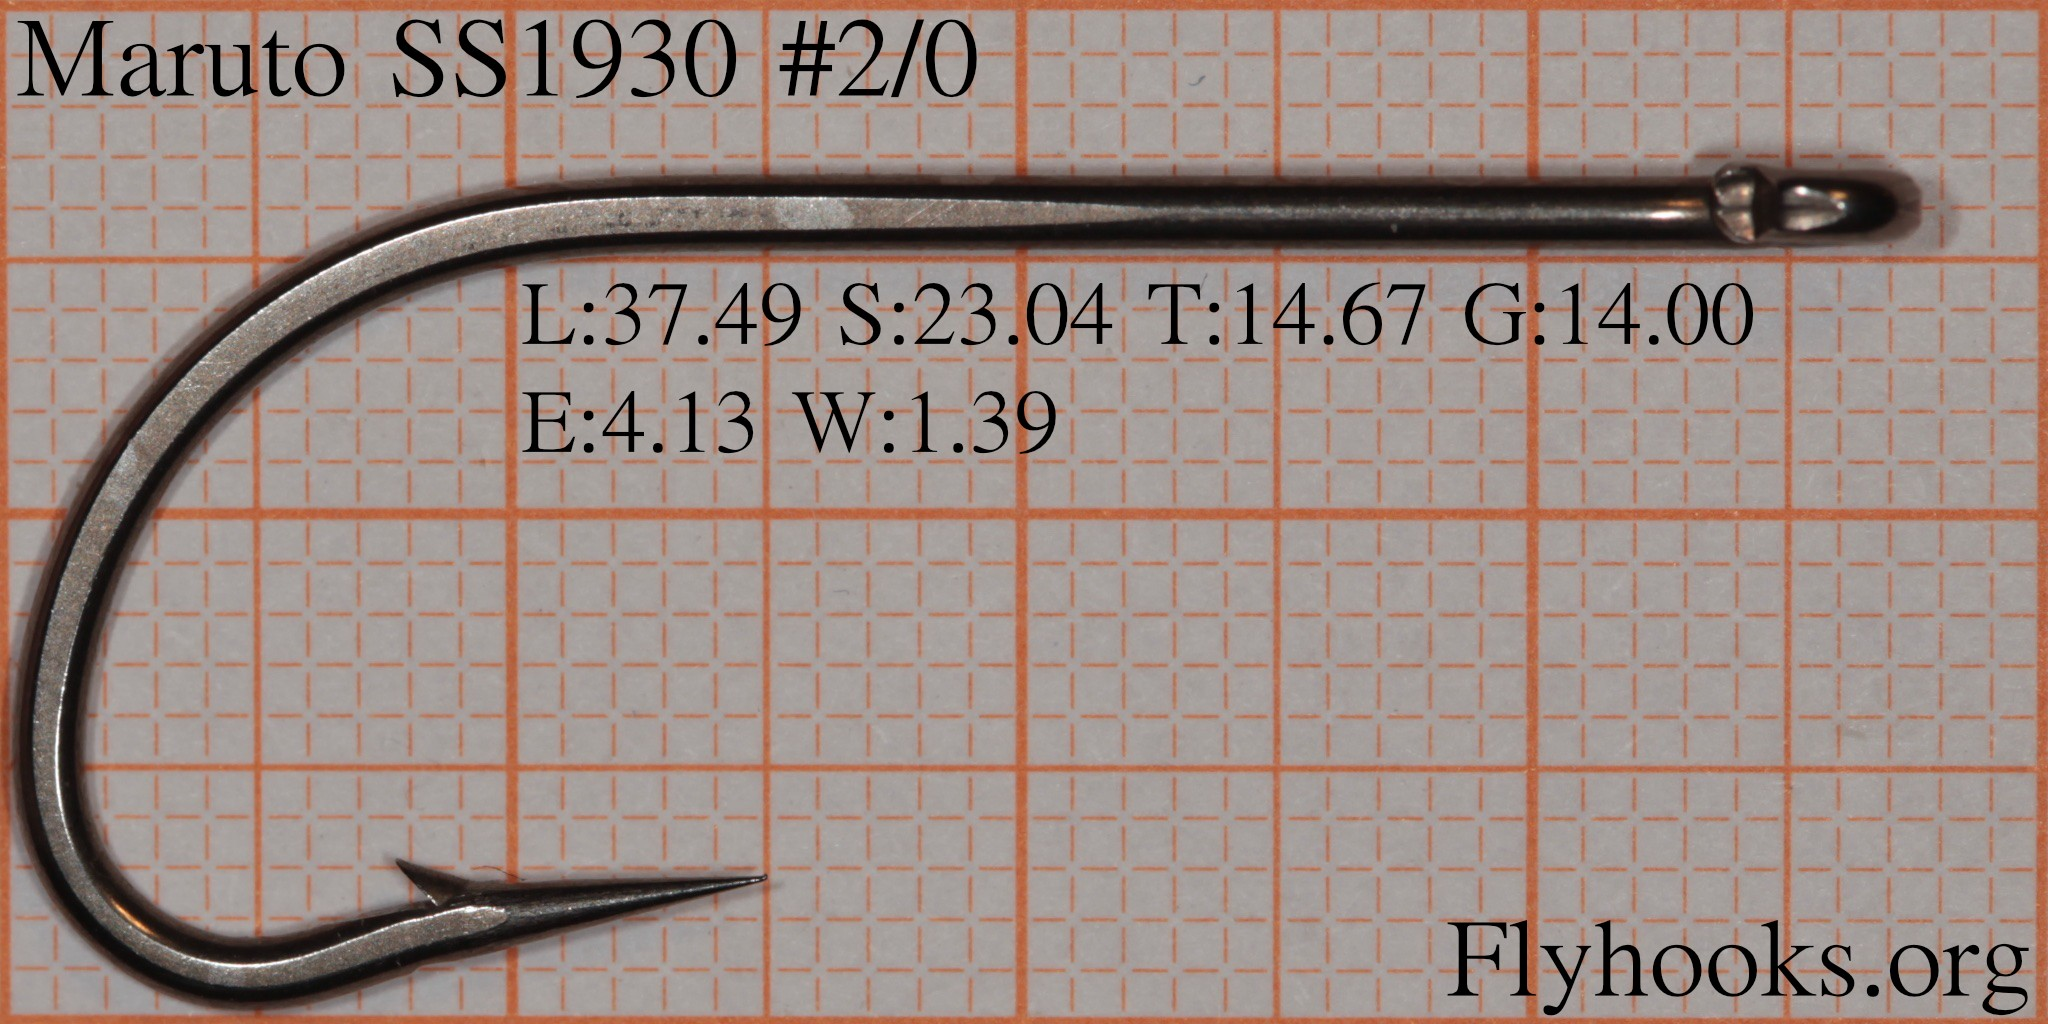 Flyhooks eye width 413 mm wire thickness 139 mm greentooth Image collections